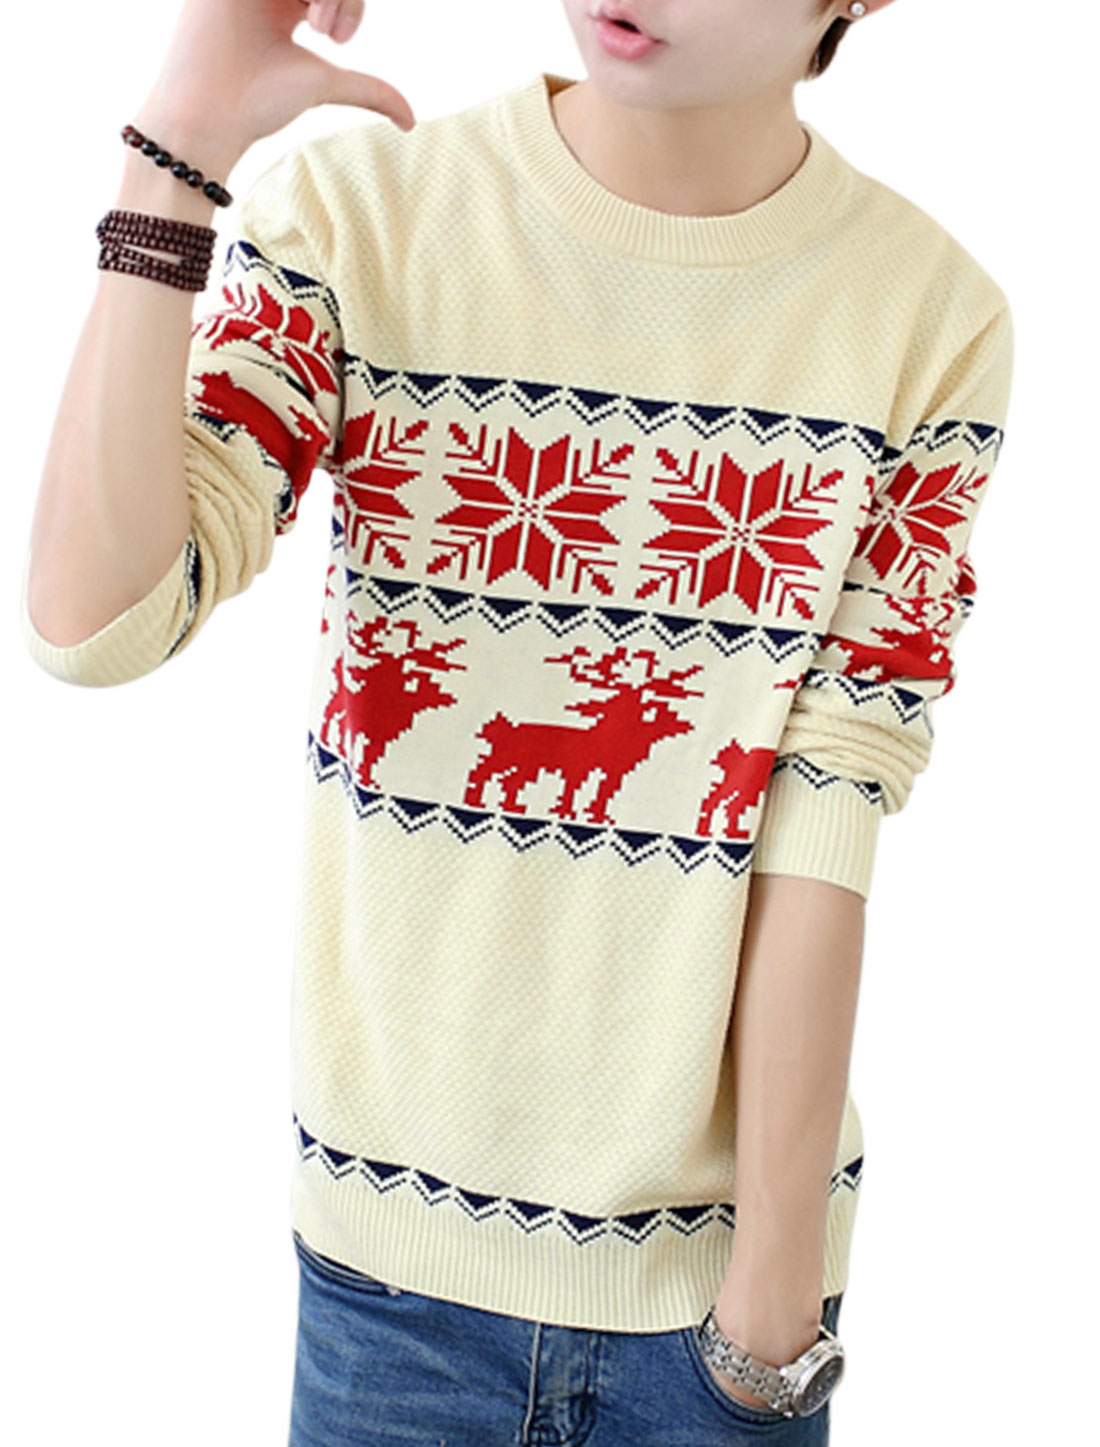 Men Beige Pullover Zigzag Deer Snowflake Prints Slim Cut Casual Sweater S